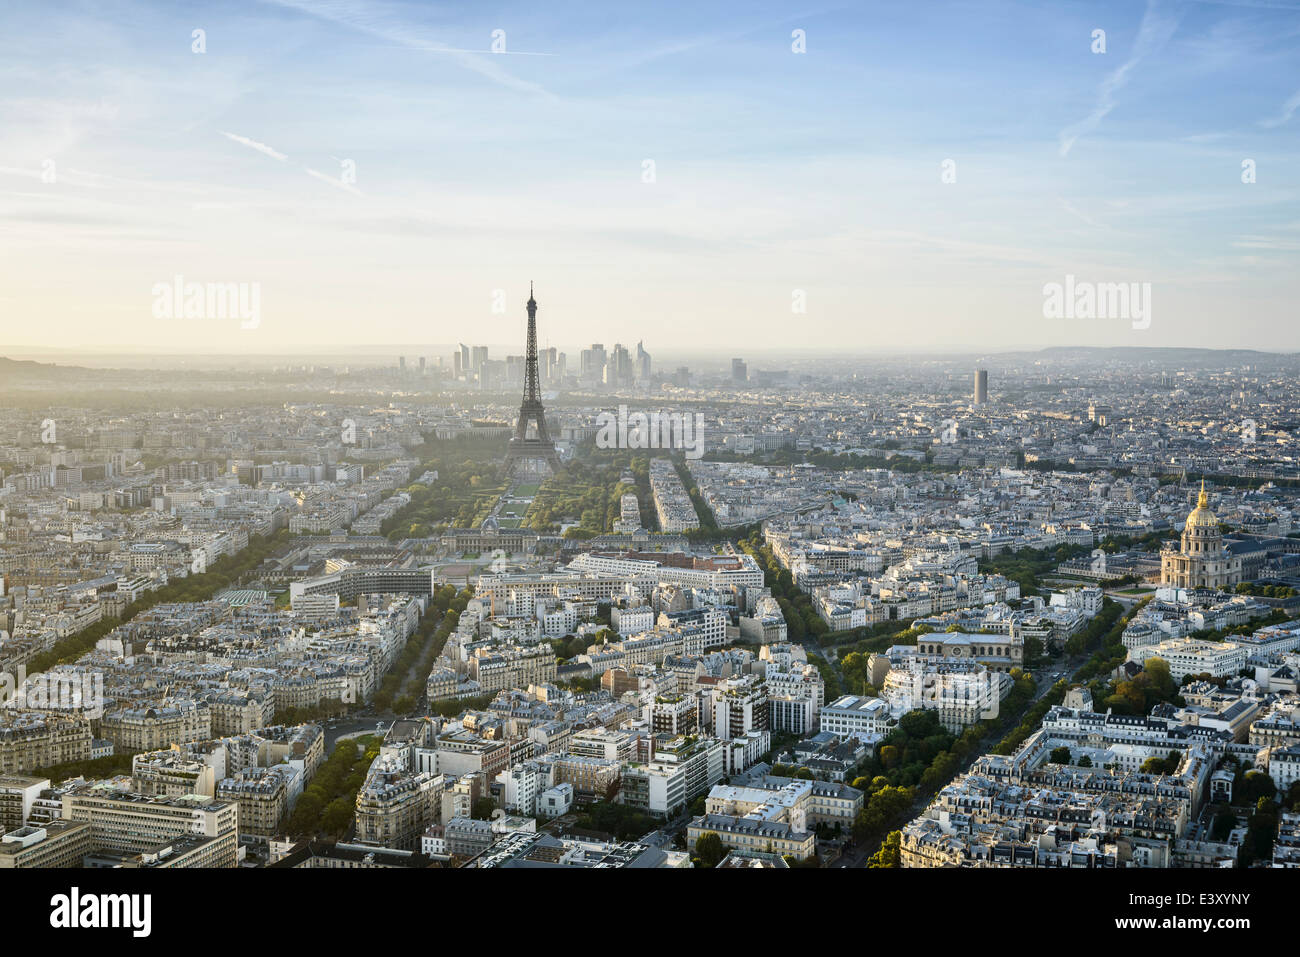 Aerial view of Paris cityscape, Paris, Ile de France, France - Stock Image